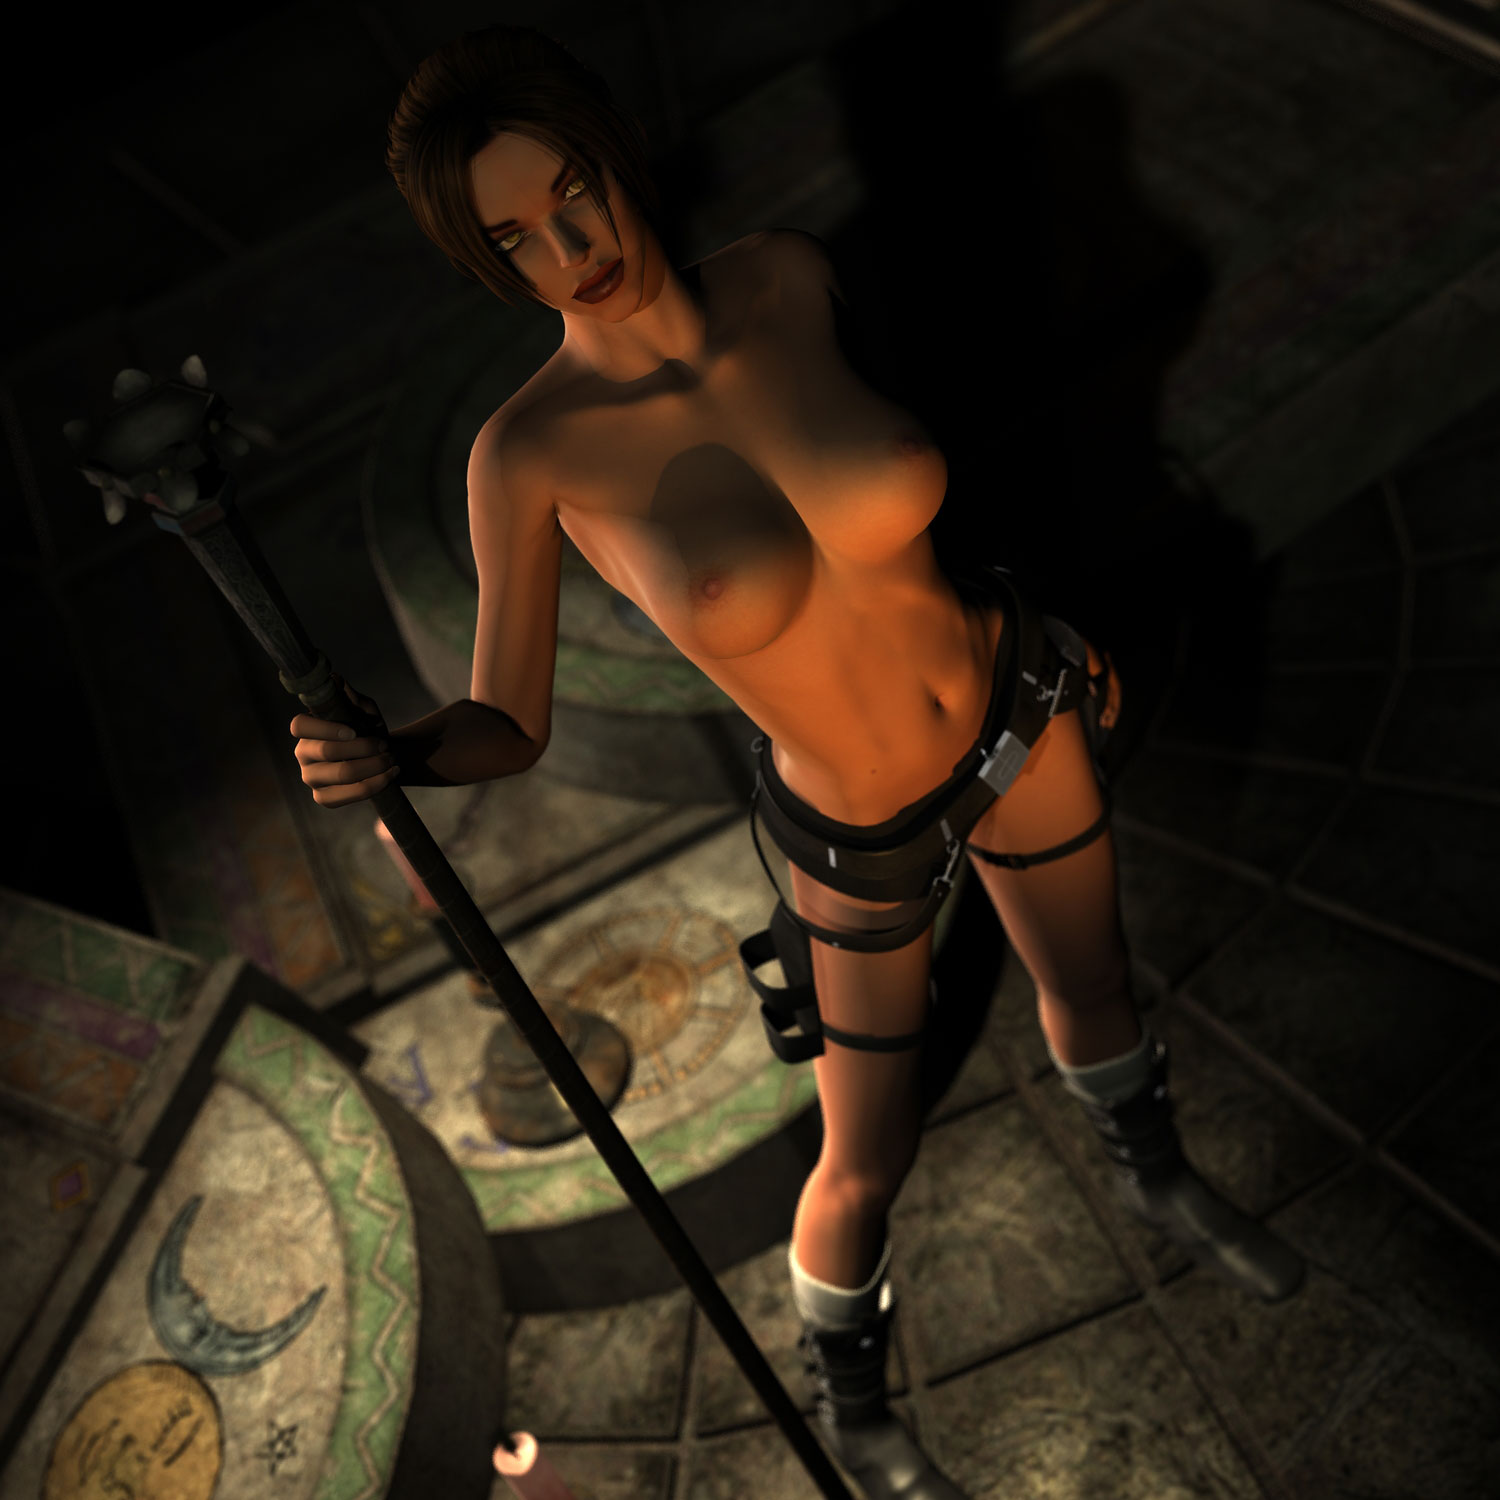 Tomb raider 3d boobs images hentia picture